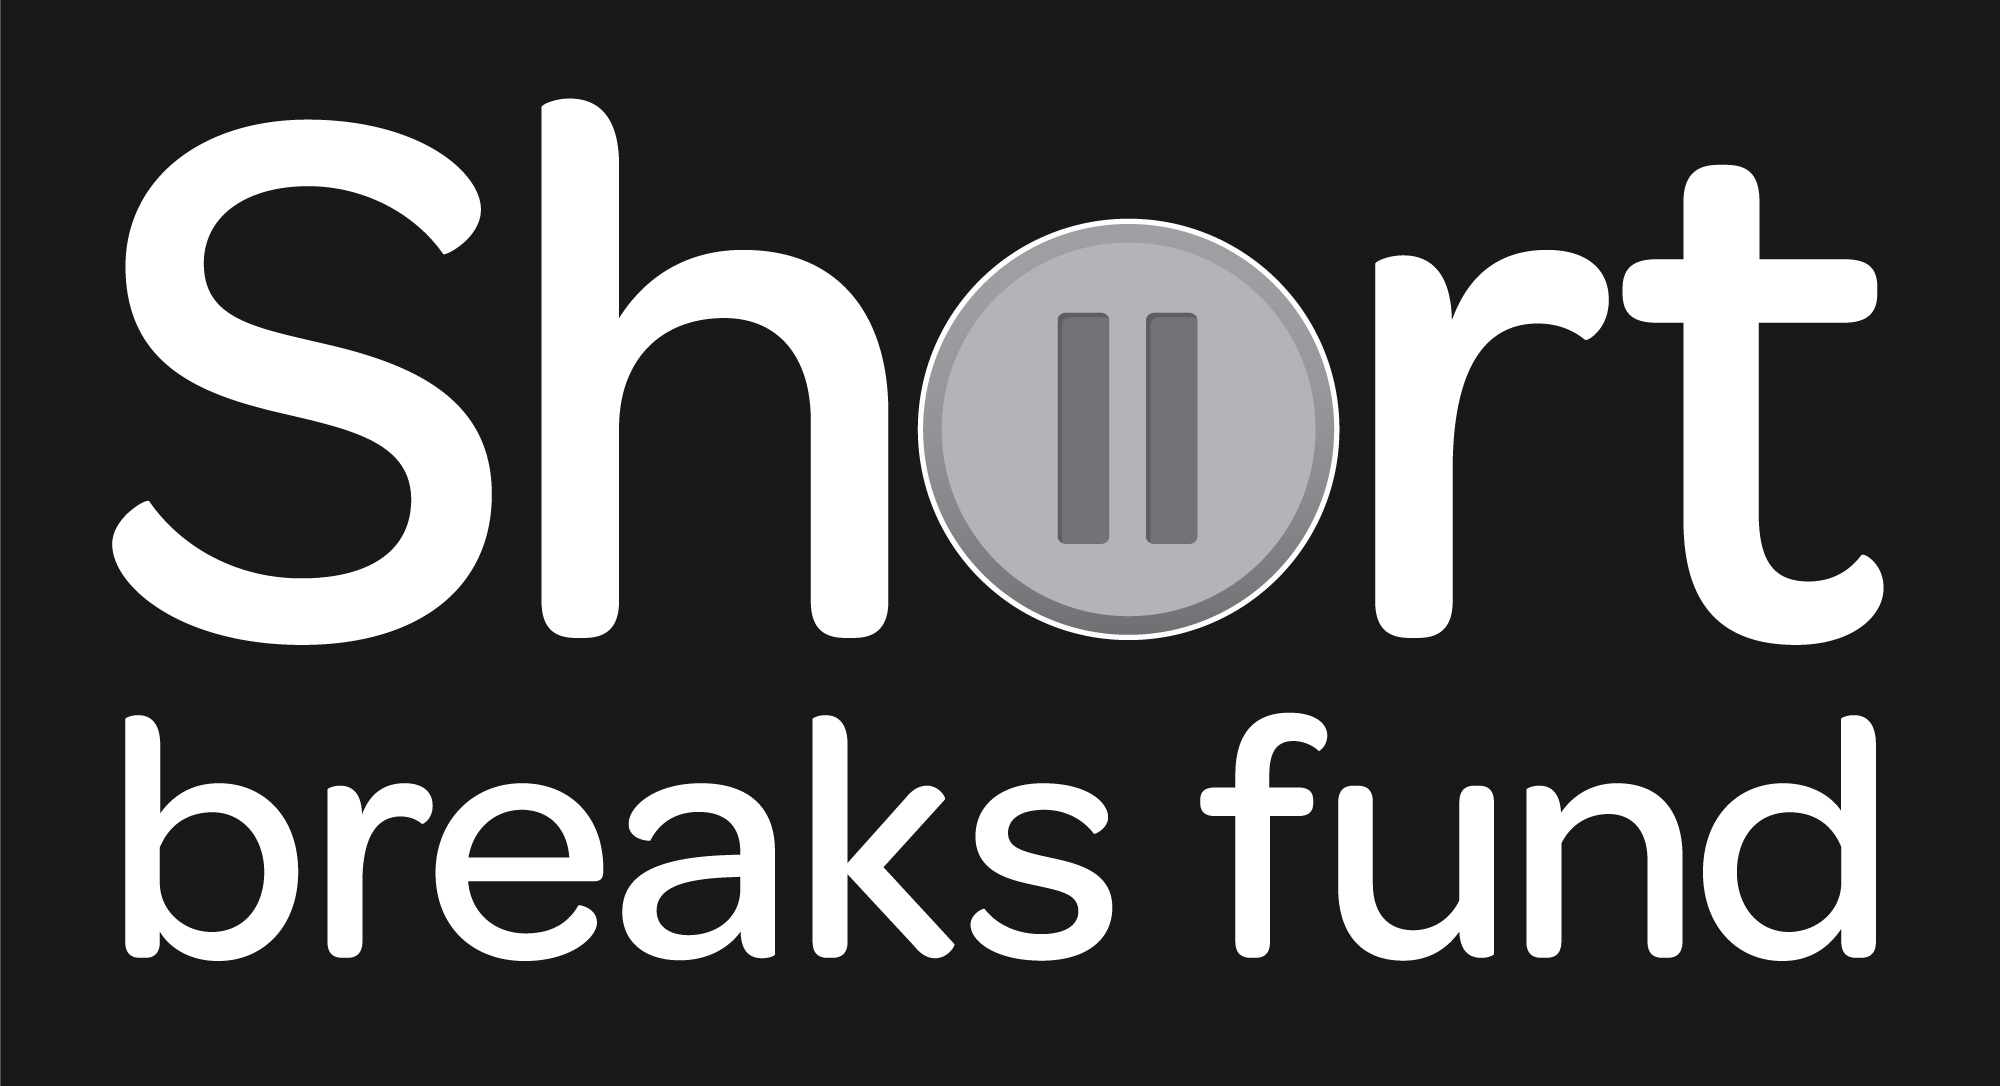 Black filled SHort Breaks Fund logo